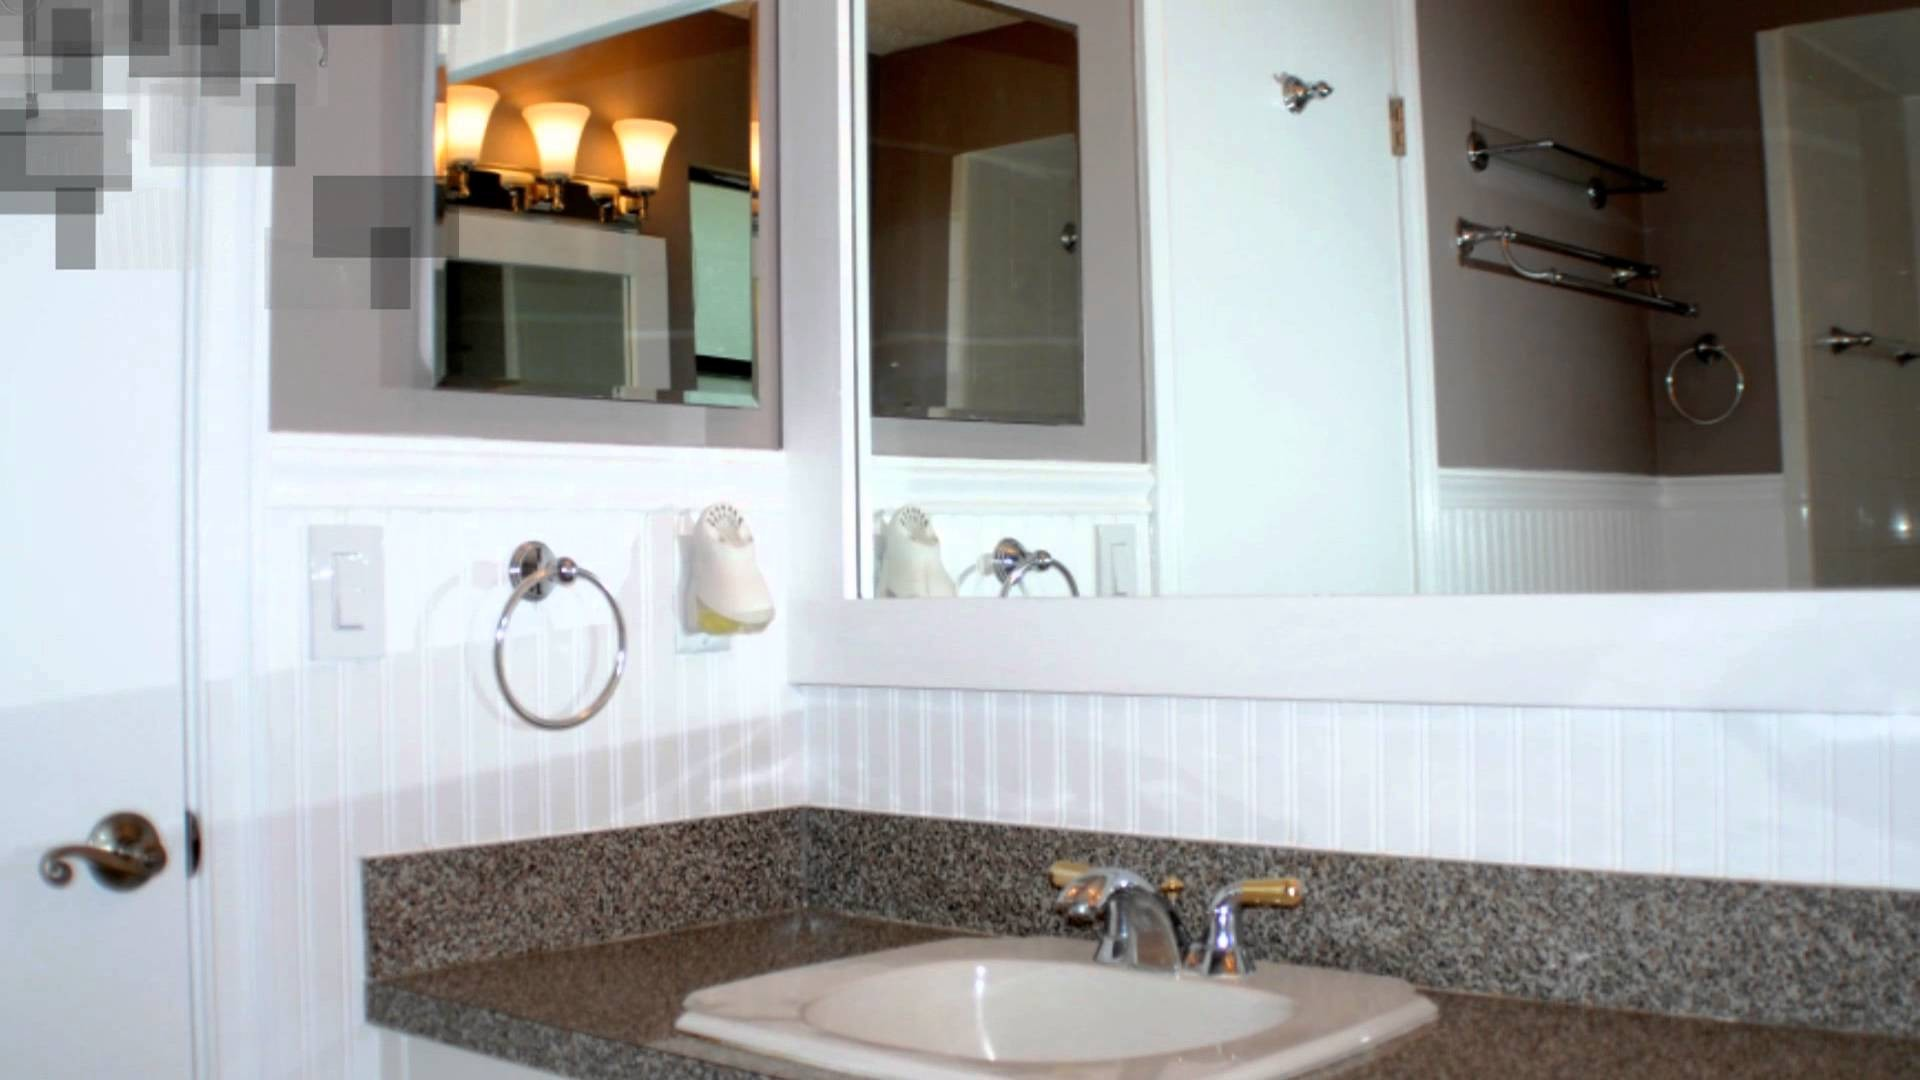 How to Install Wainscoting In Bathroom Incredible How to Install Beadboard In A Bathroom Construction